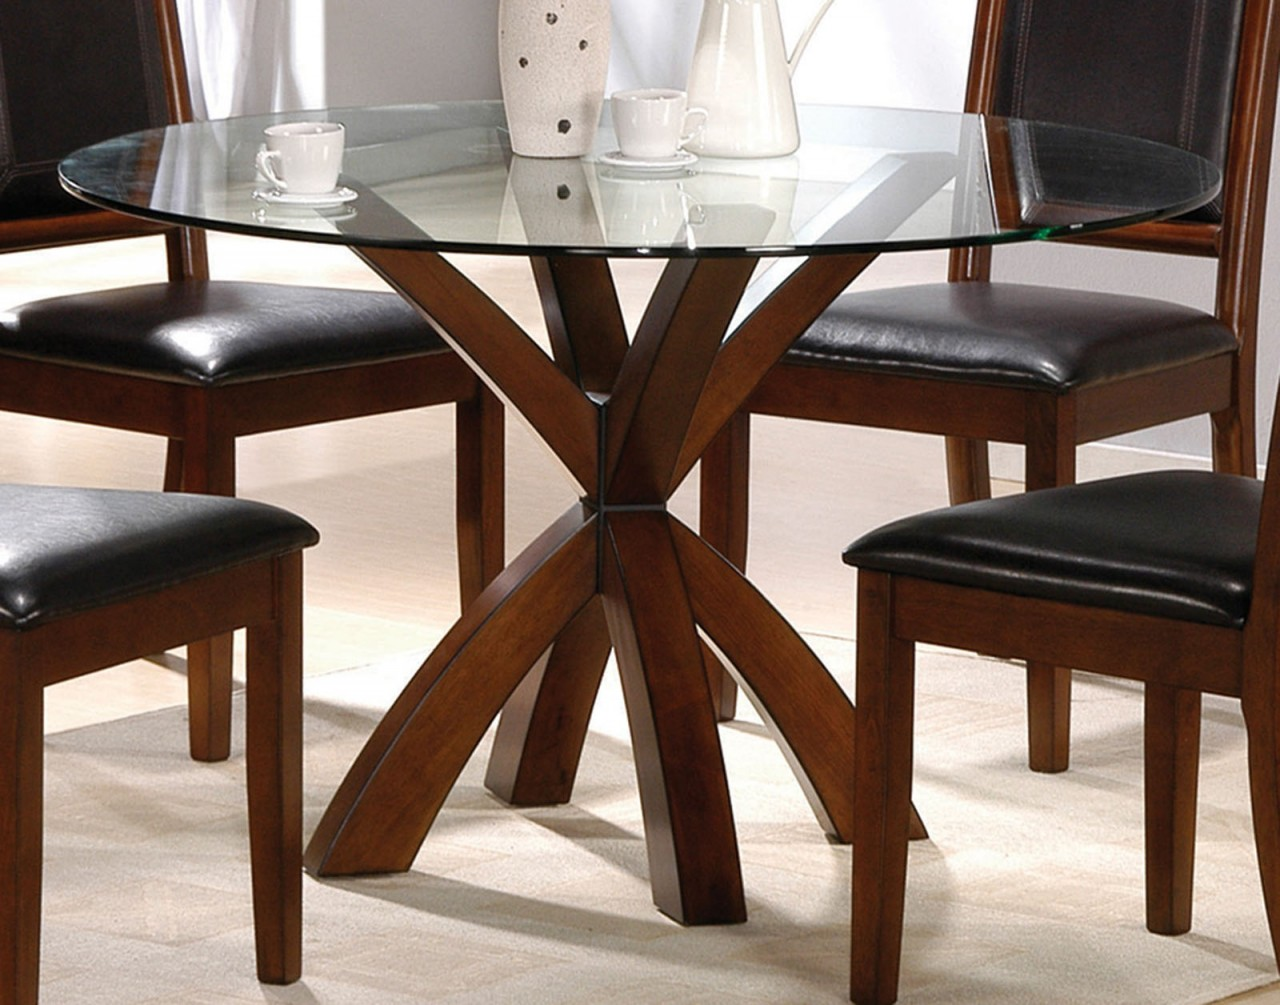 simple round glass top dining tables with wood base and chairs black leather seats ideas accent table doors patio furniture toronto clearance small side for living room pier one